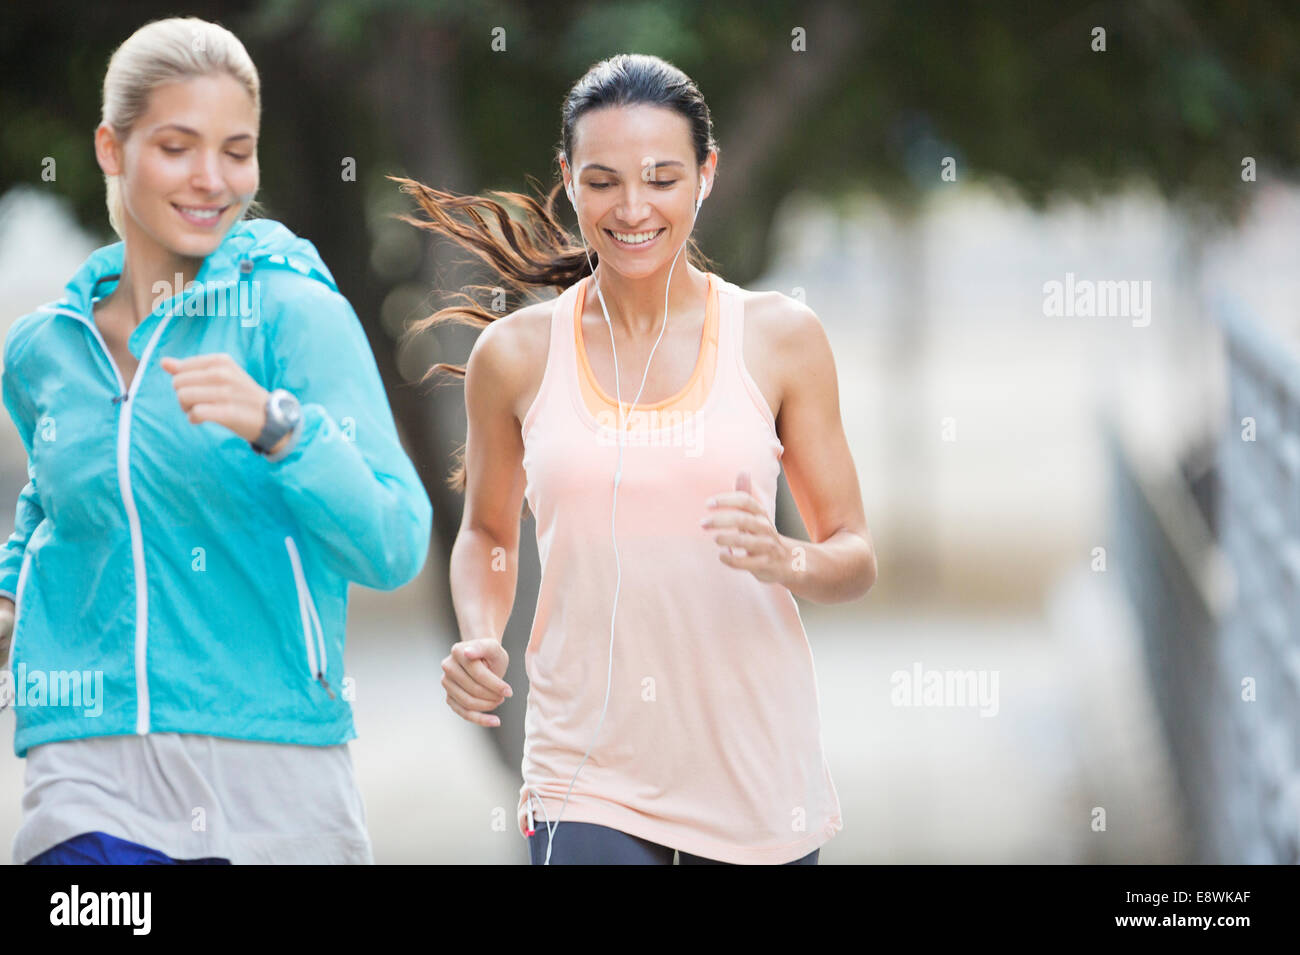 Women running through city streets together - Stock Image